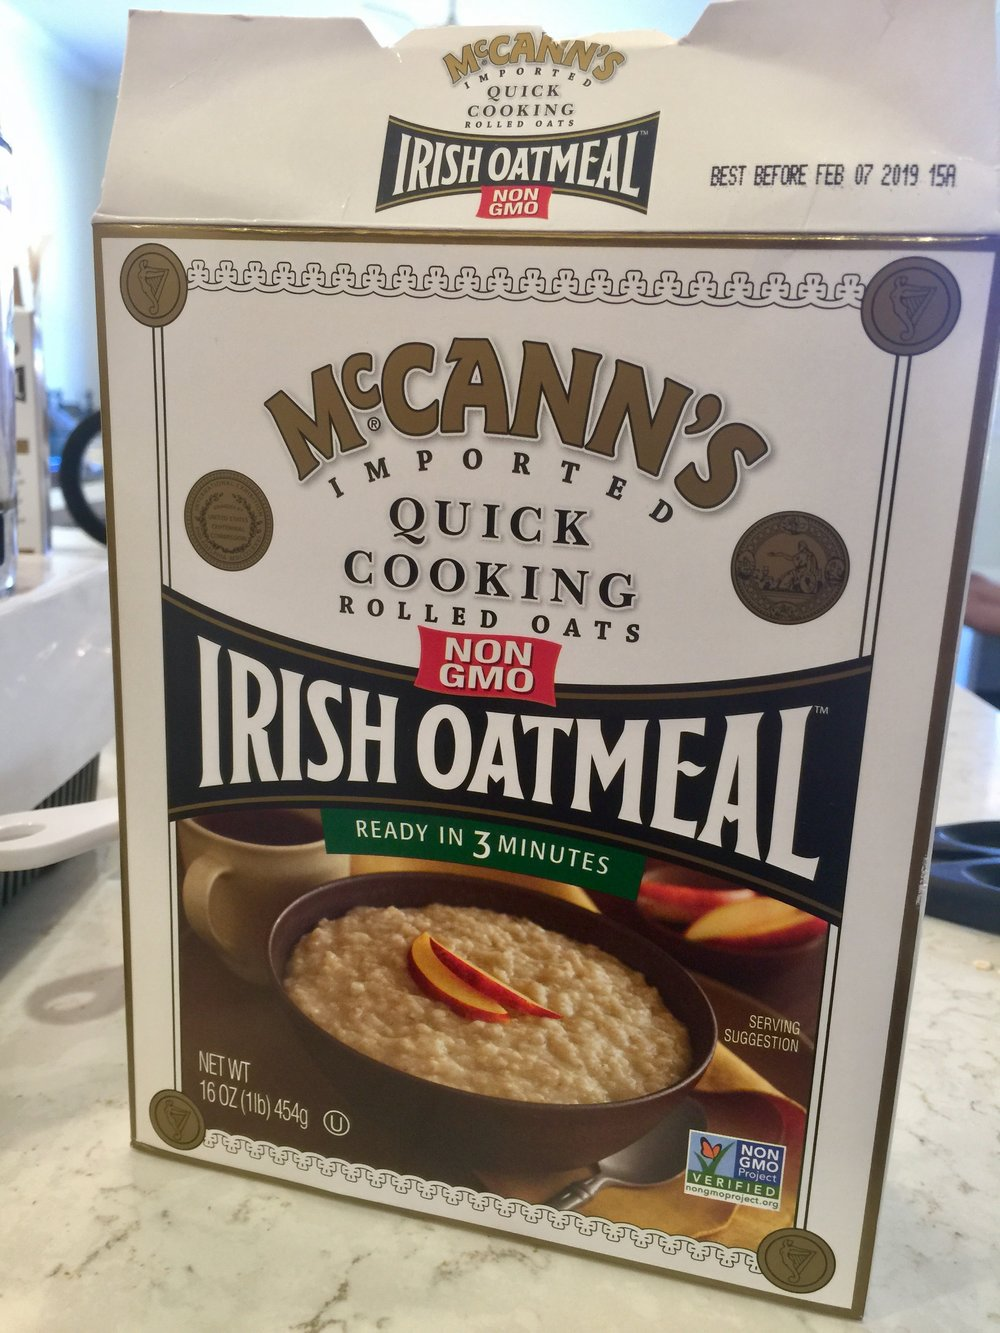 I only use McCann's oats. I've noticed they don't hurt my stomach like US oats do, which I assume has something to do with GMOs or other dodgy practices I know nothing about. Whatever. McCann's worked great. I'm sure Bob's Gluten-Free would also work.